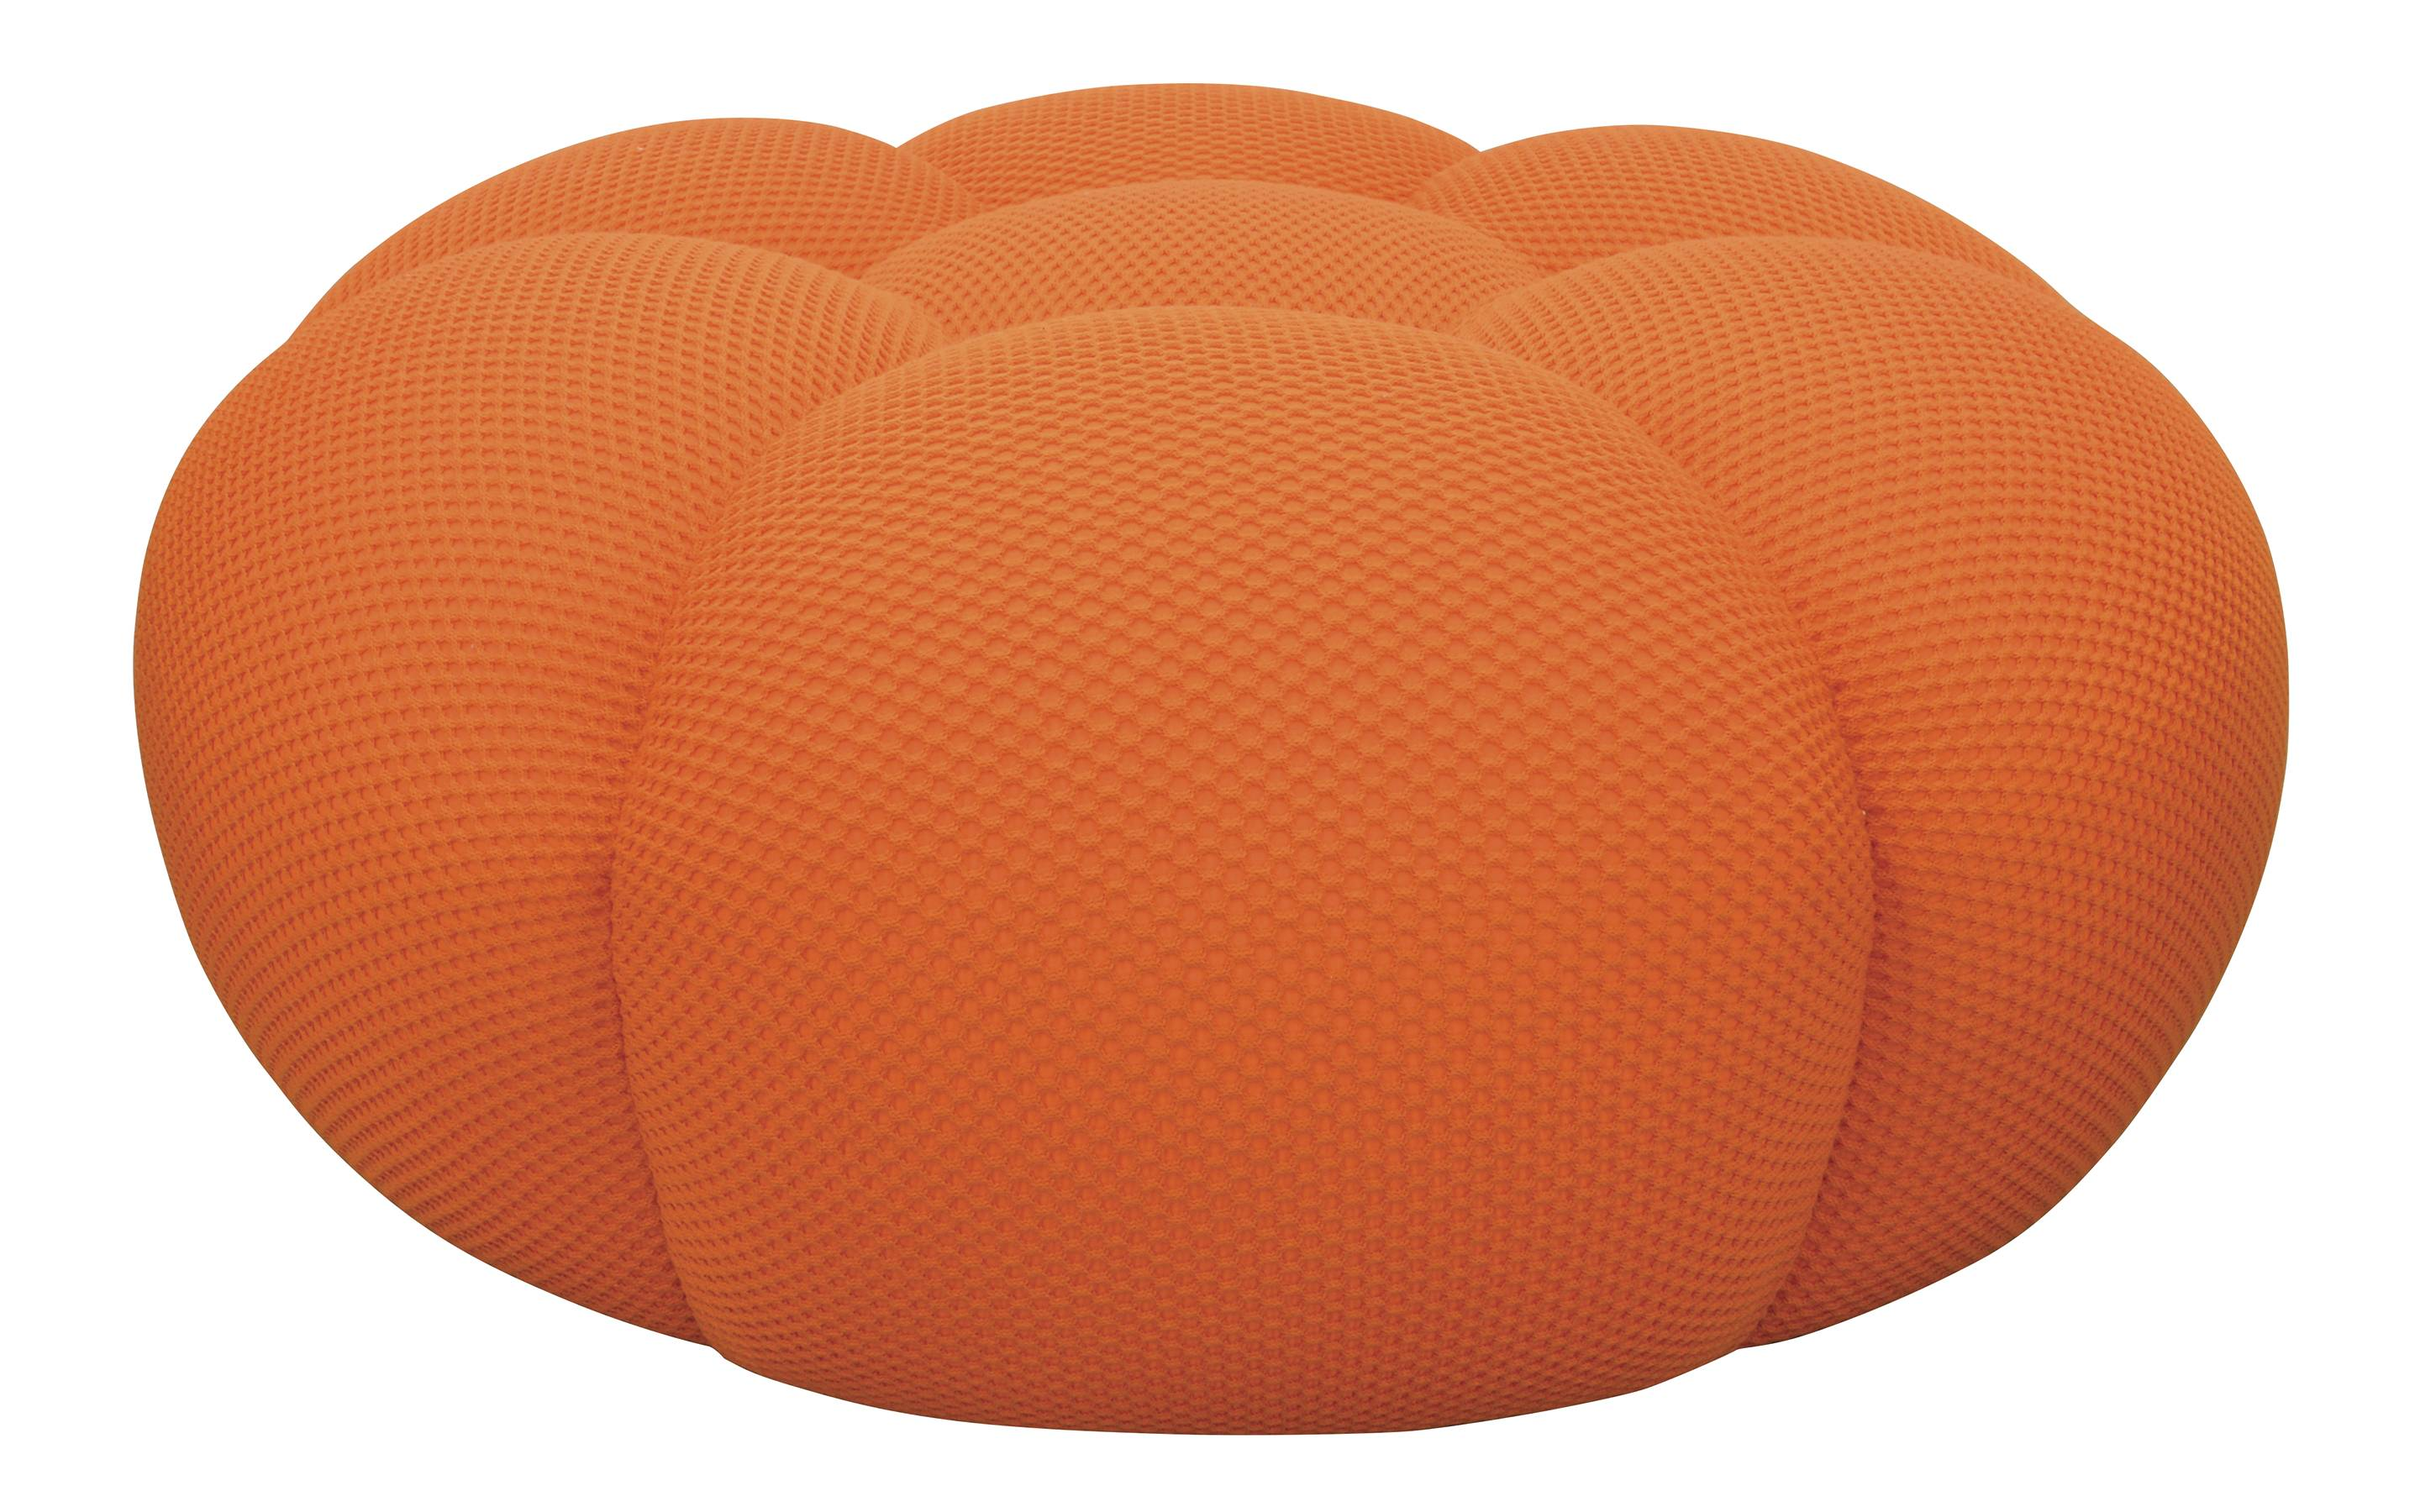 RocheBoboisBUBBLEPouf1orange.jpg